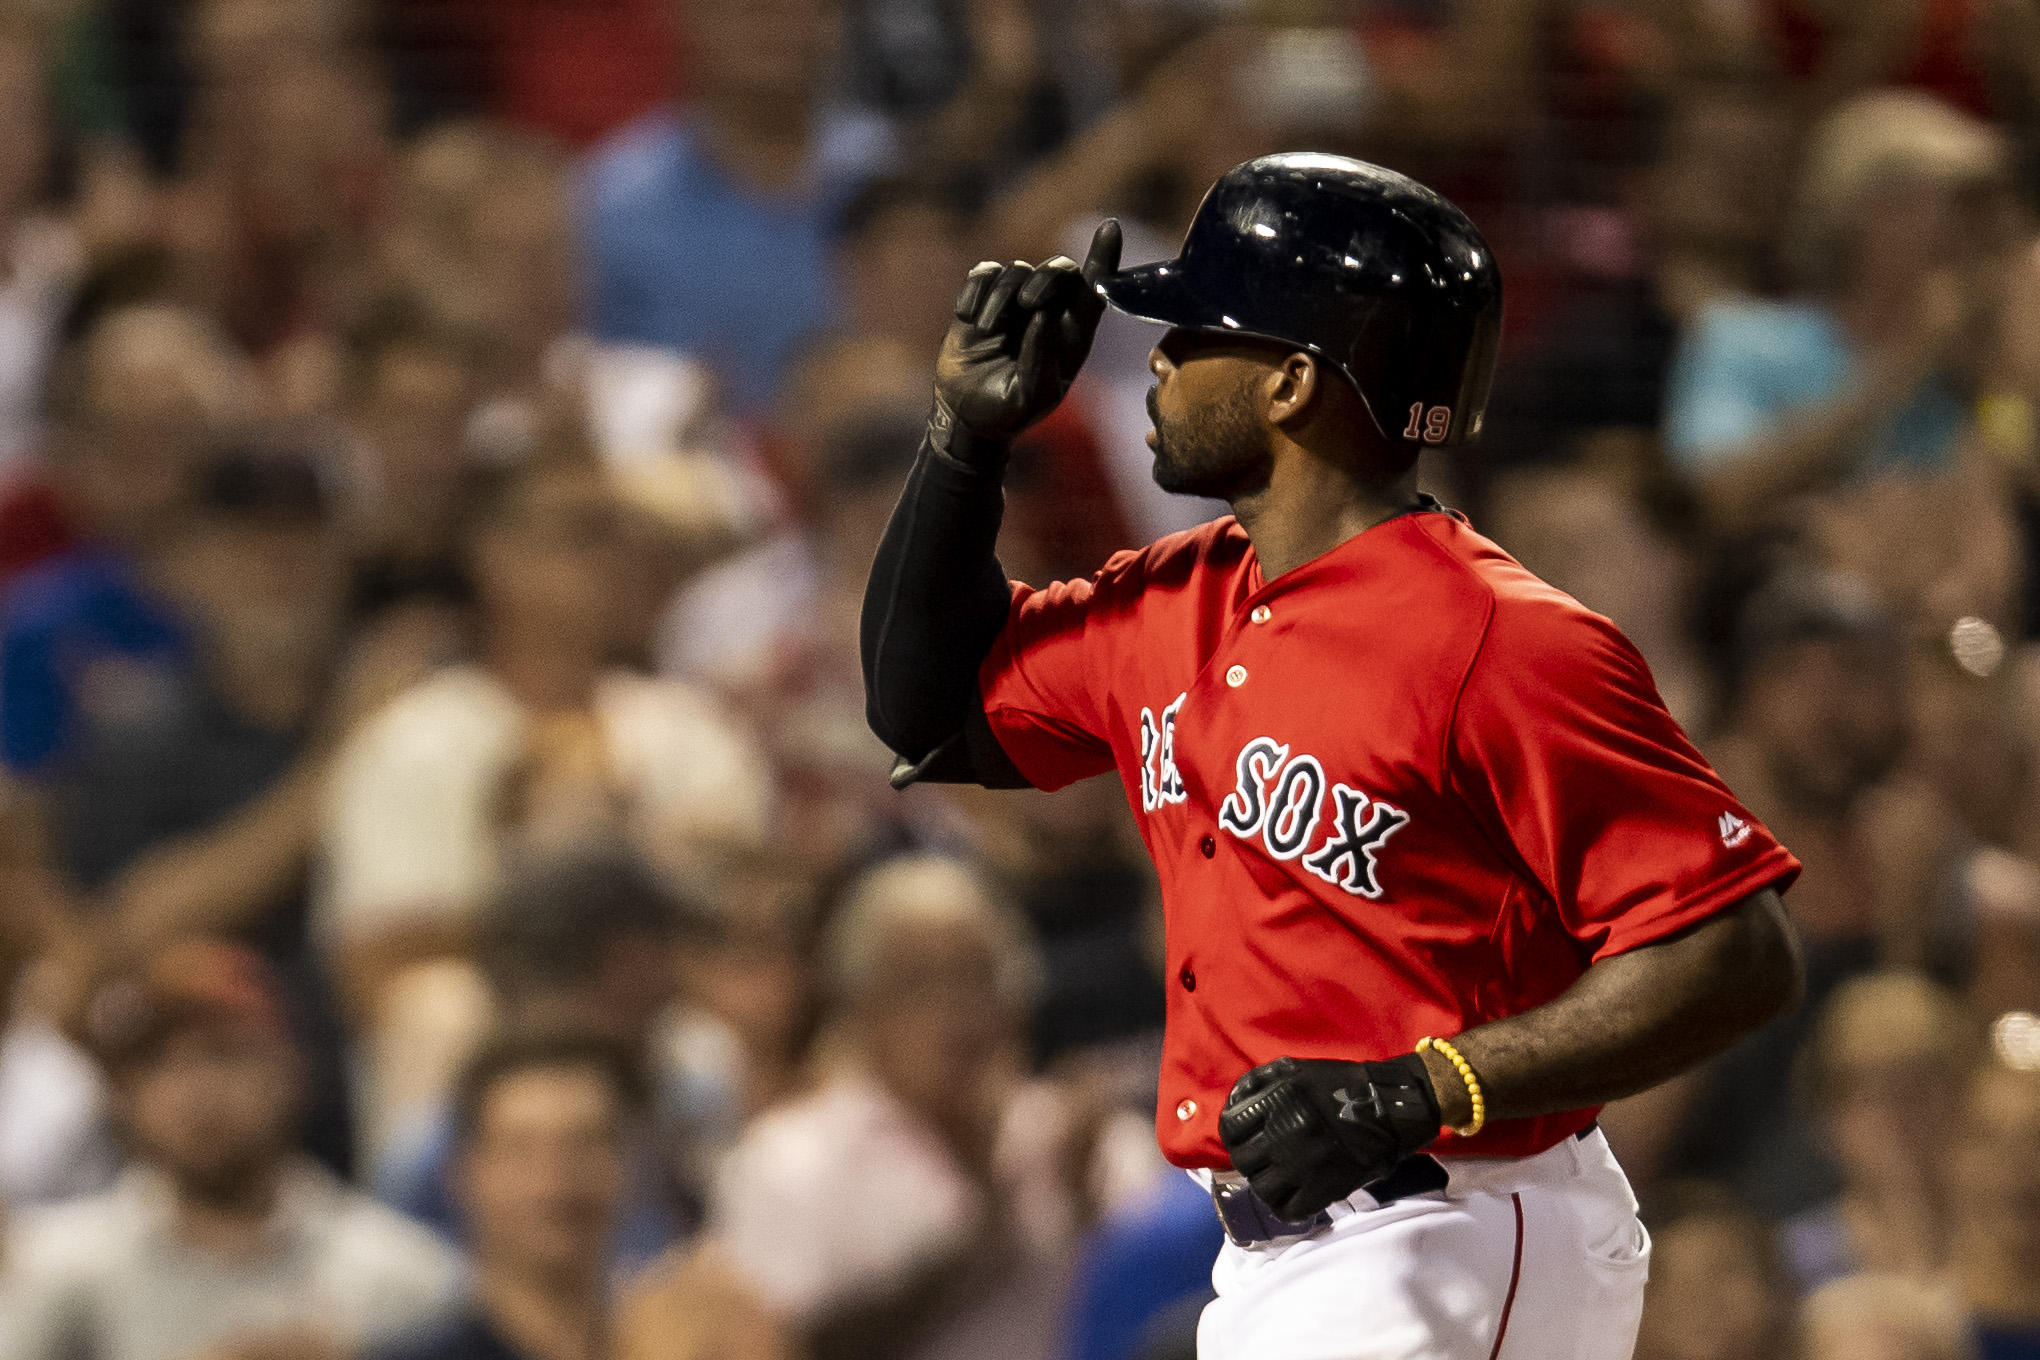 July 26, 2018, Boston, MA: Boston Red Sox outfielder Jackie Bradley Jr. celebrates after hitting a home run as the Boston Red Sox face the Minnesota Twins at Fenway Park in Boston, Massachusetts on Friday, July 27, 2018. (Photo by Matthew Thomas/Boston Red Sox)